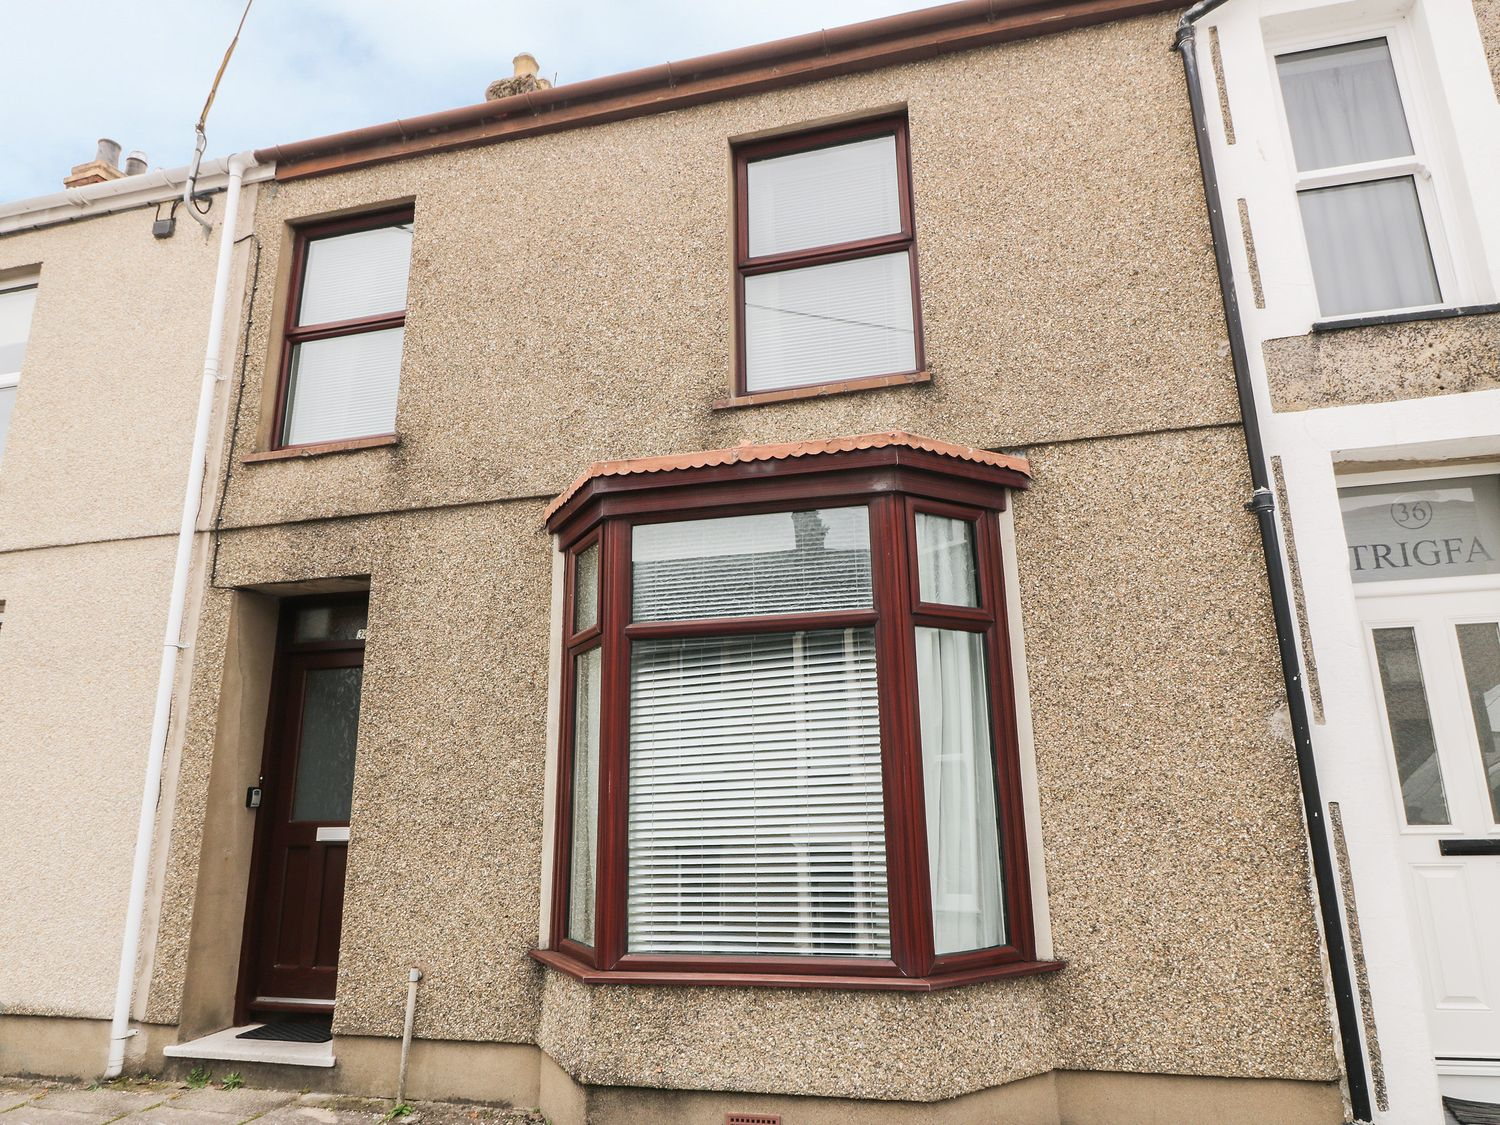 34 New Street - North Wales - 1043393 - photo 1